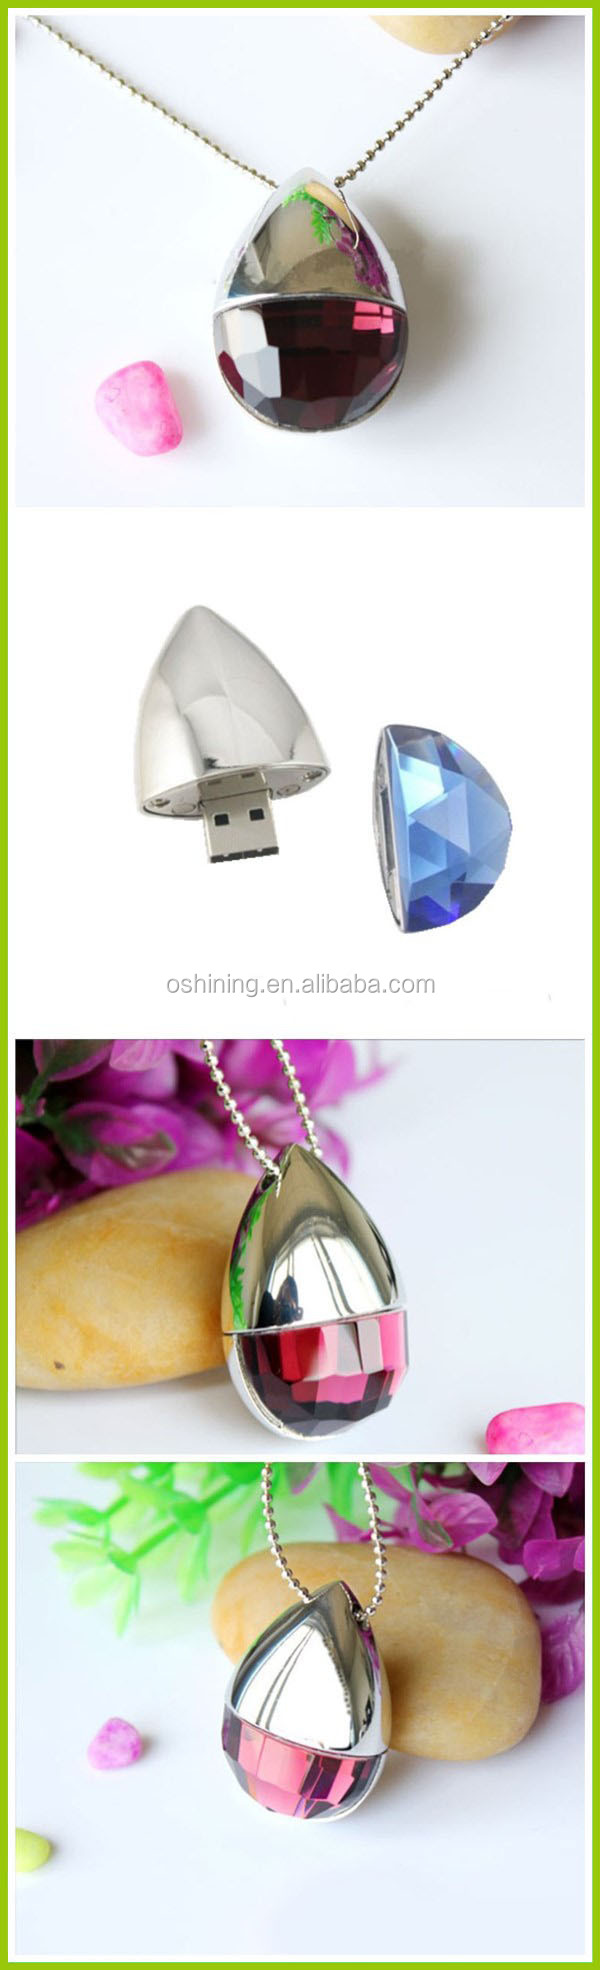 Cute Heart Shape Transparent Crystal Usb Flash Memory For Women Necklace USB Flash Drive(USB-DA324)